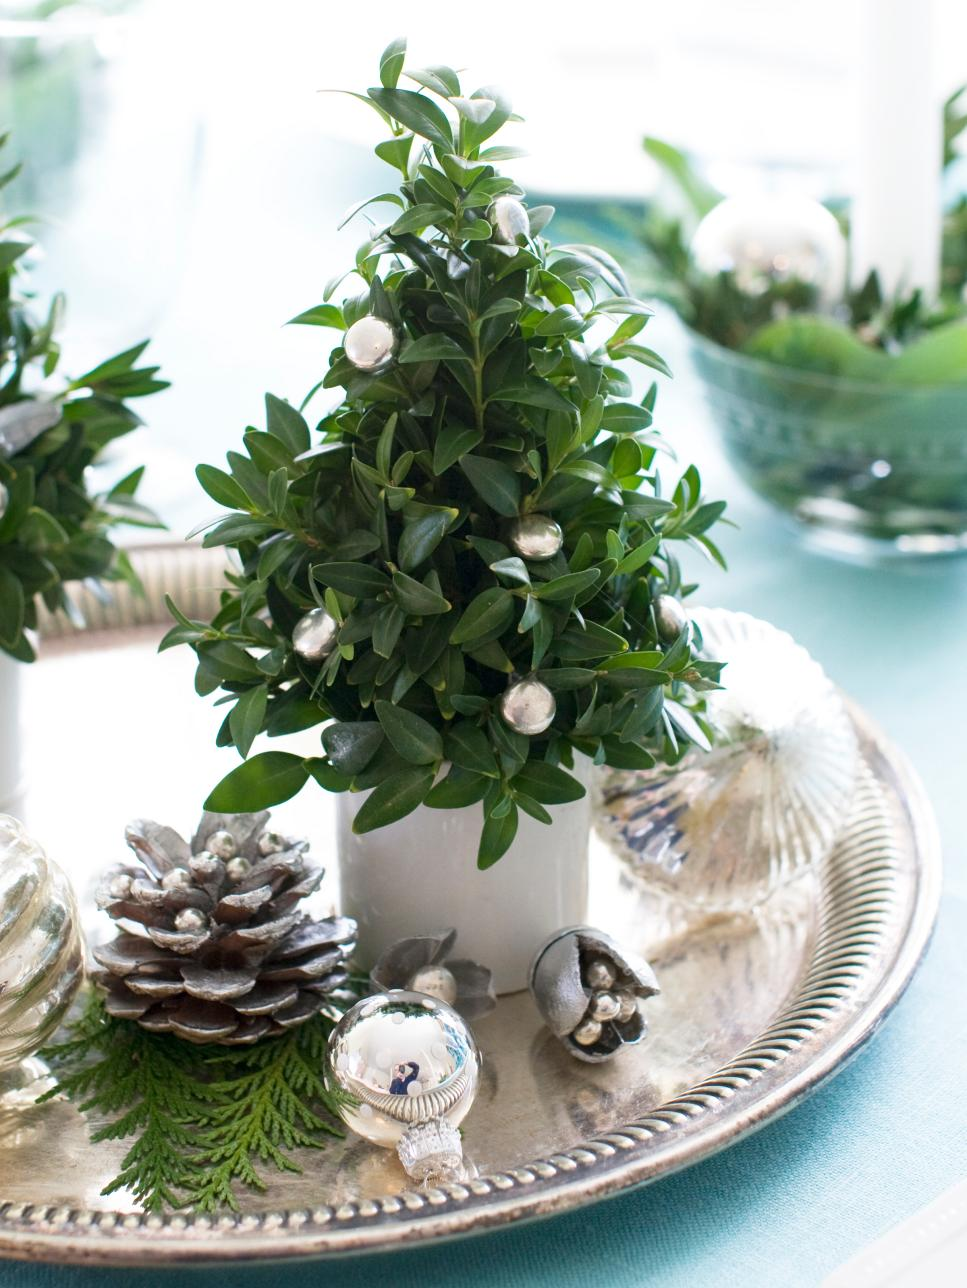 25 Diy Craft Ideas For Christmas Table Decorations Reliable Remodeler